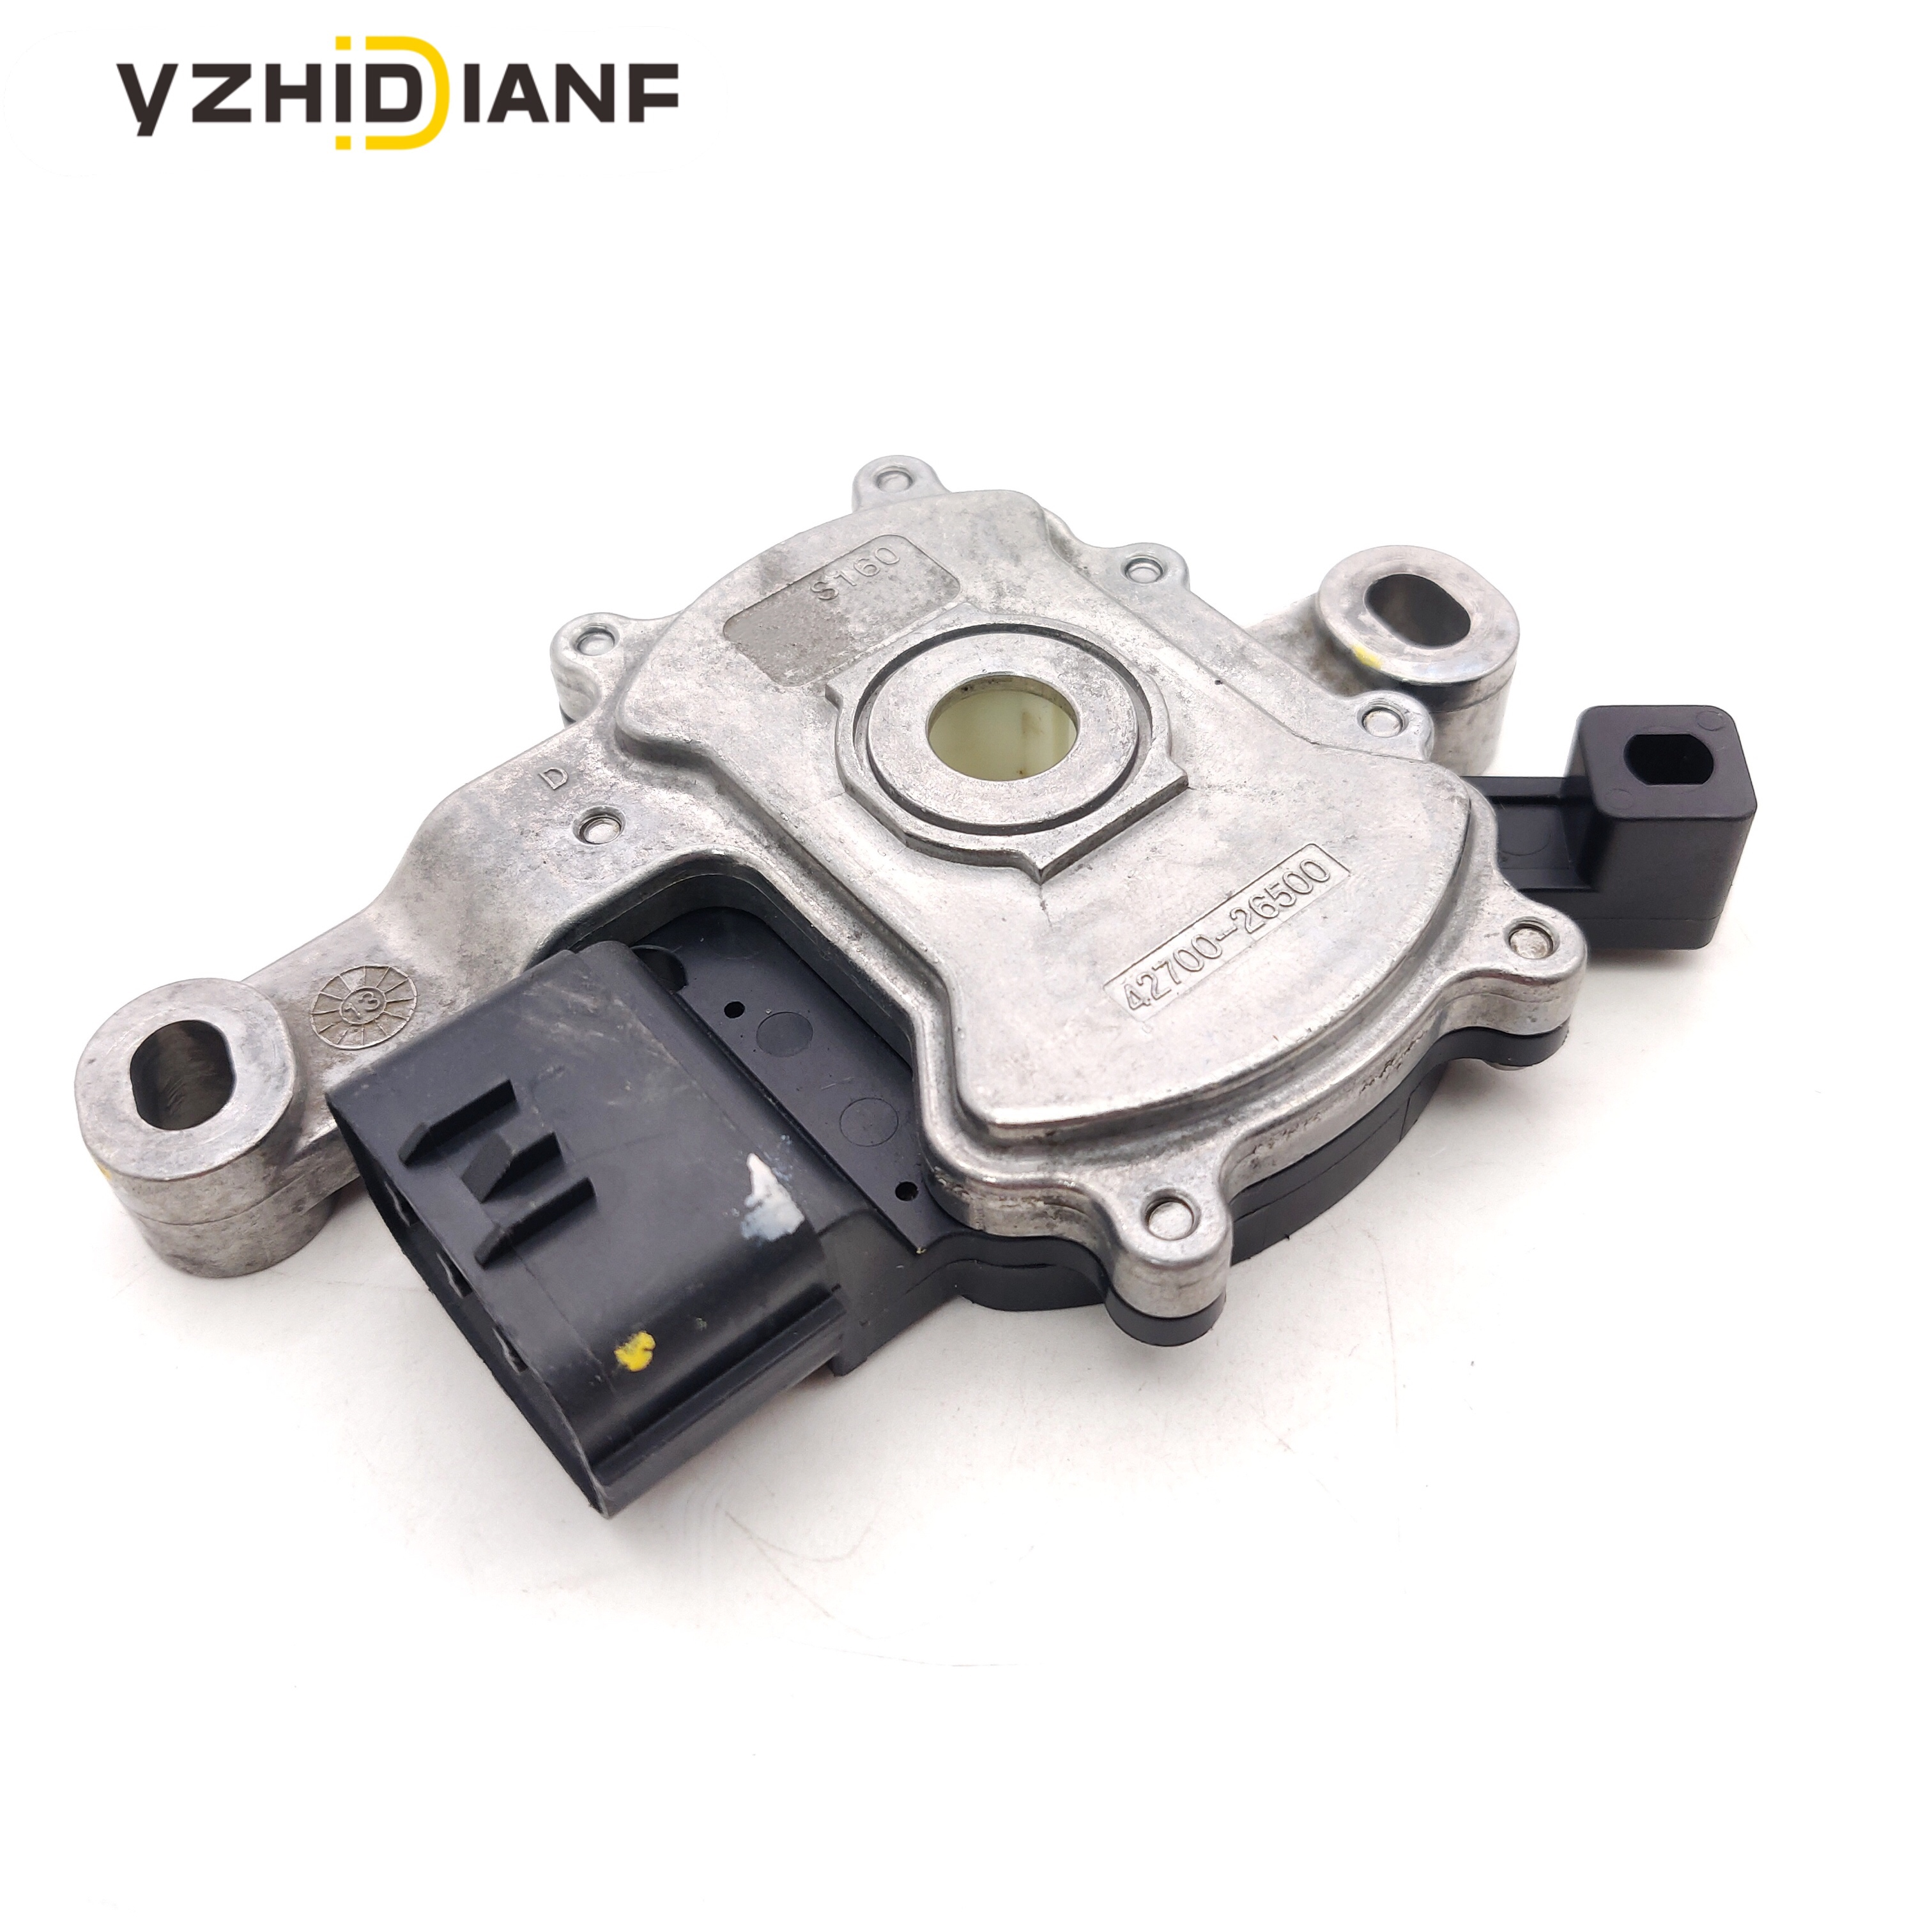 China factory direct sale Inhibitor Switch 42700-26500 4270026500 for Hyundai